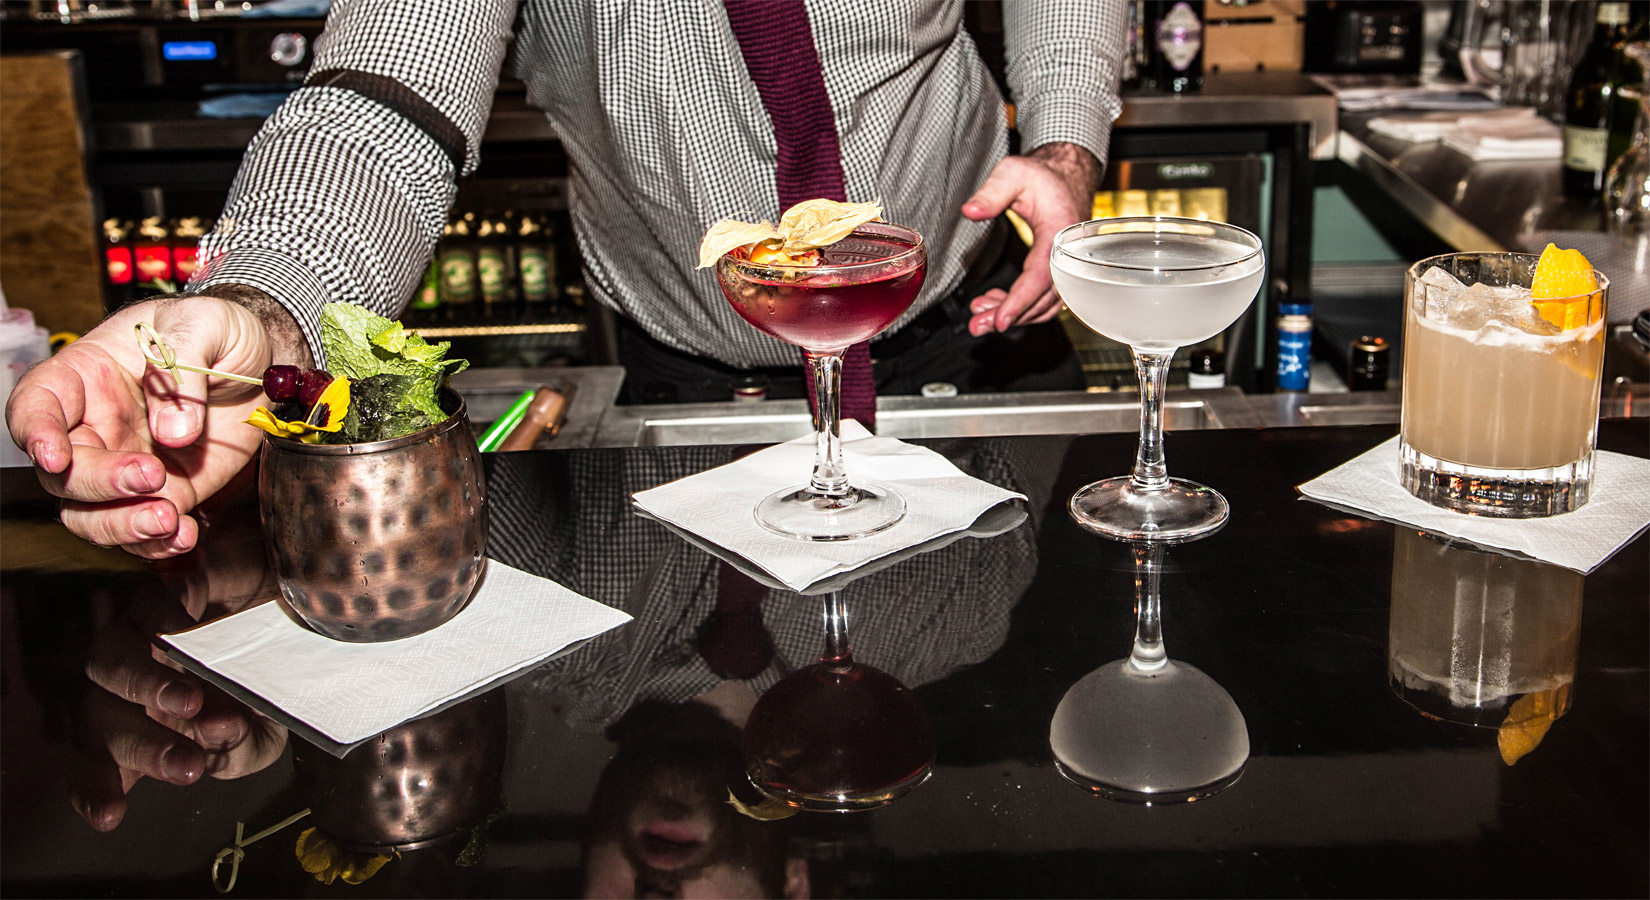 This is a restaurant for every occasion – brunch with friends, casual after-work cocktails or date night with your partner